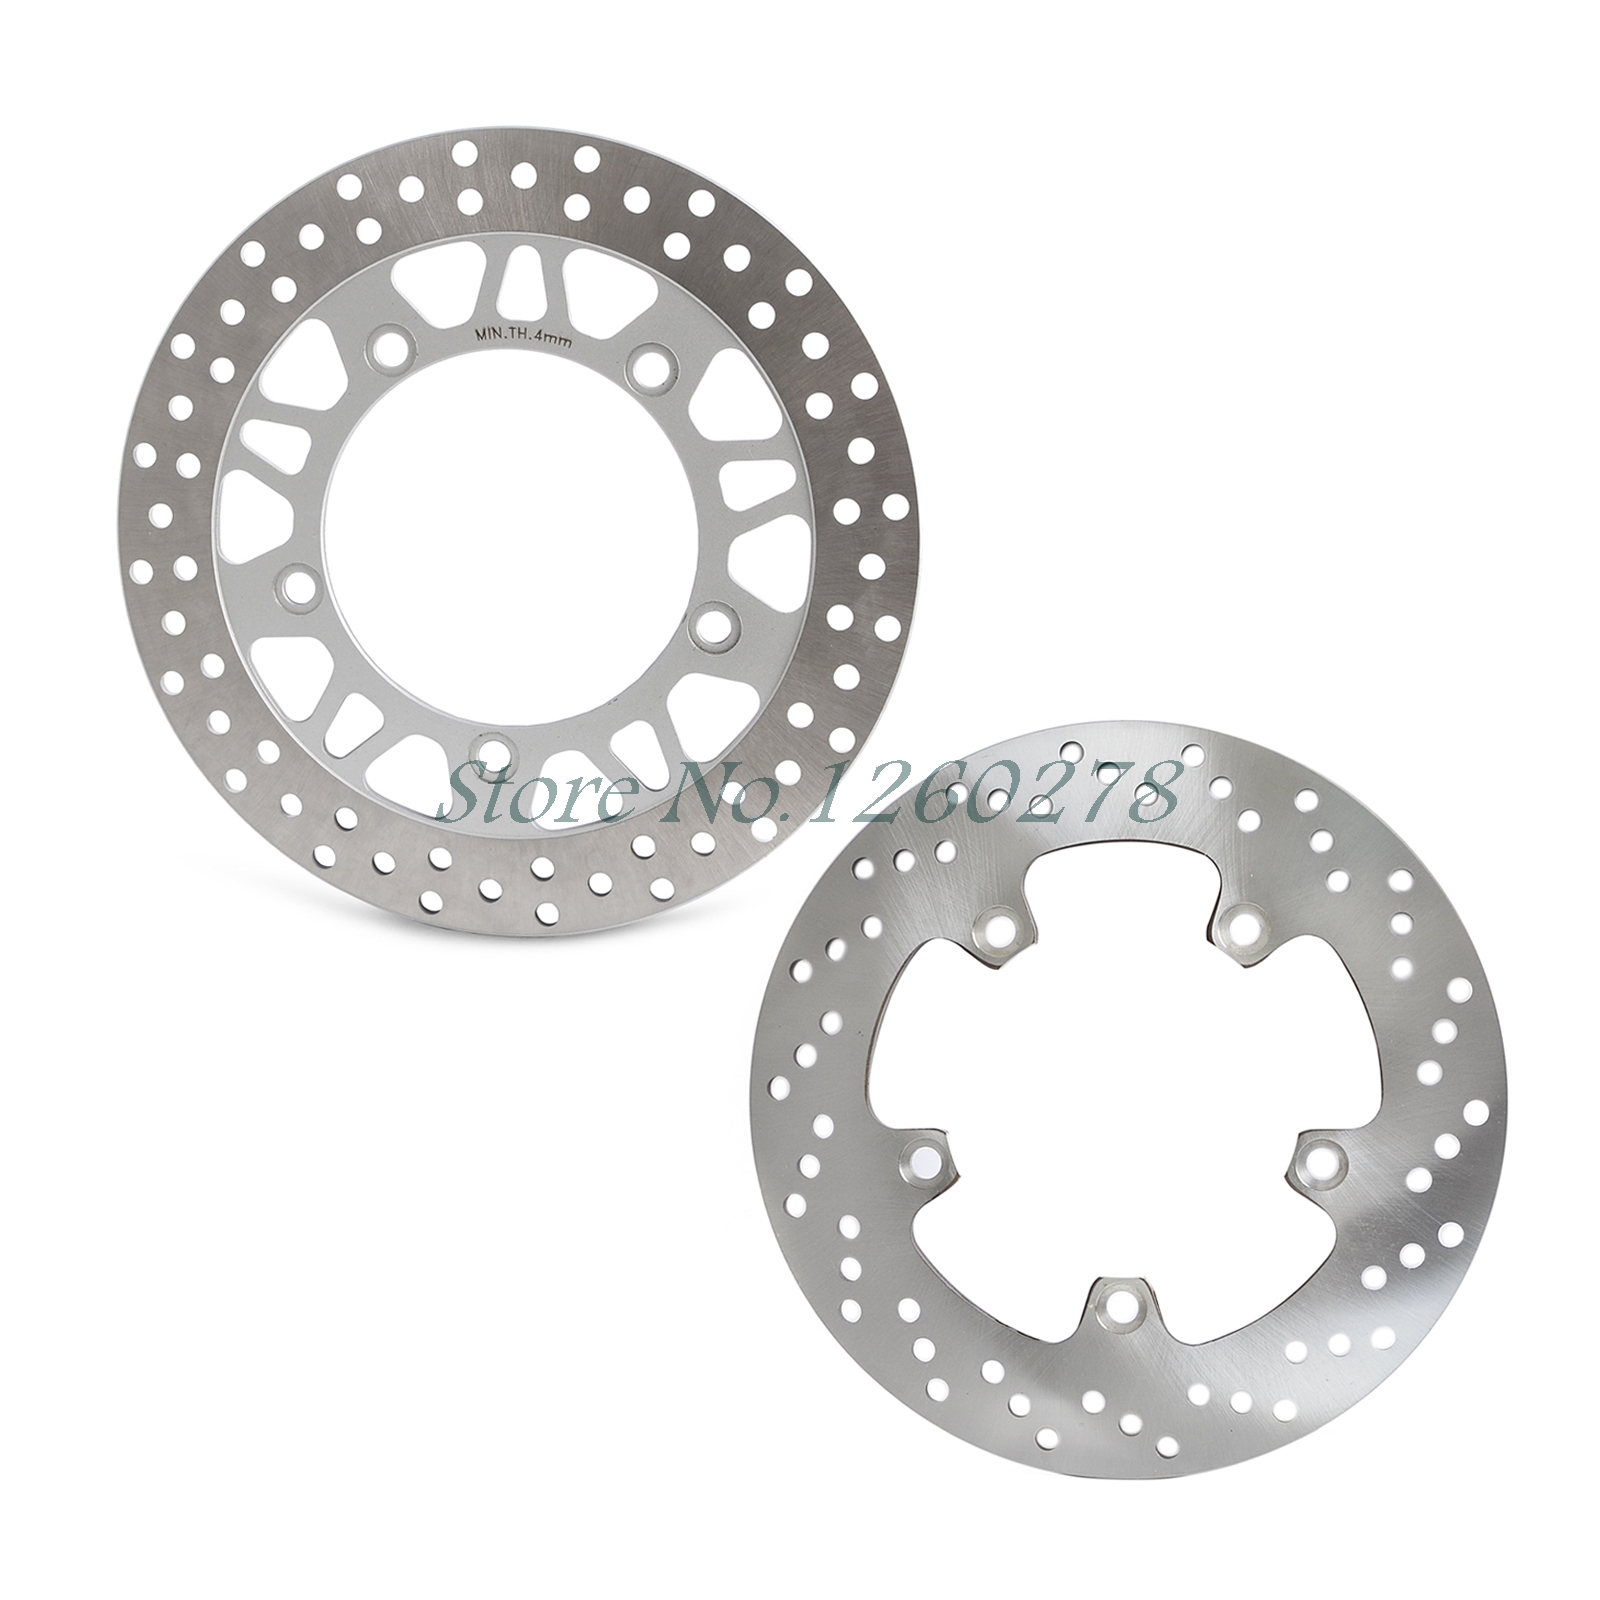 New Motorcycle Front & Rear Brake Disc Rotor For Suzuki AN650 2004 2005 2006 2007 2008 2009 2010 2011 2012 AN 650 new brand m front brake disc rotors motorcycle for honda cbr600rr 2003 2004 2005 2006 2007 2008 2009 2010 2011 2012 2013 2014